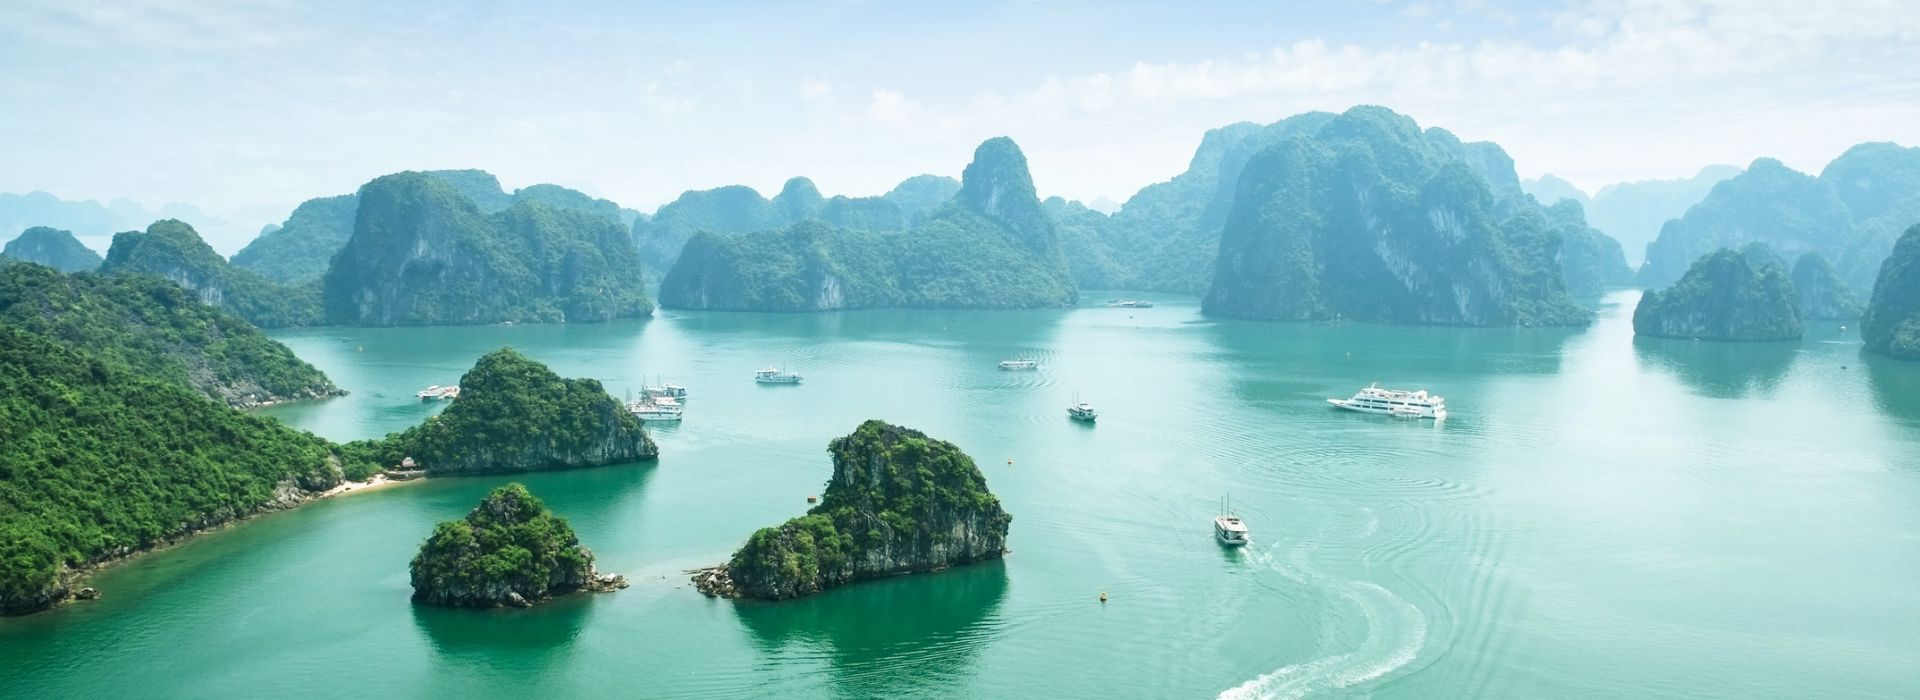 Special interests and hobbies Tours in Ho Chi Minh City